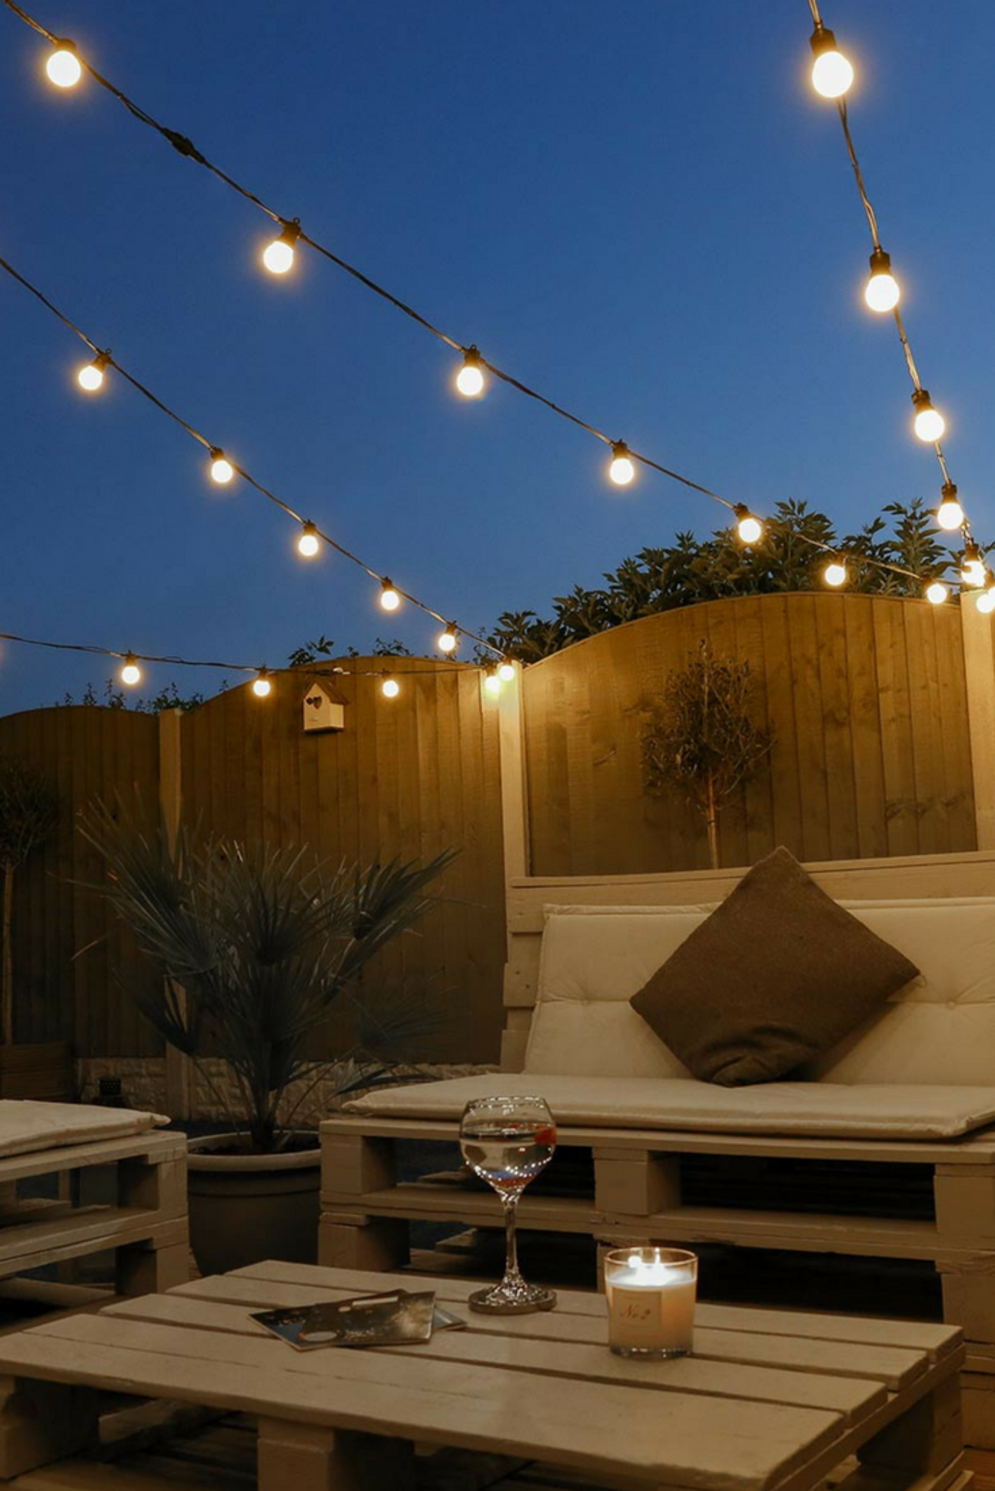 Amazing Garden Lighting Styles To Make Your Outdoor Space Livelier Than Ever Shairoom Com Backyard Lighting Outdoor Garden Lighting Patio Lighting